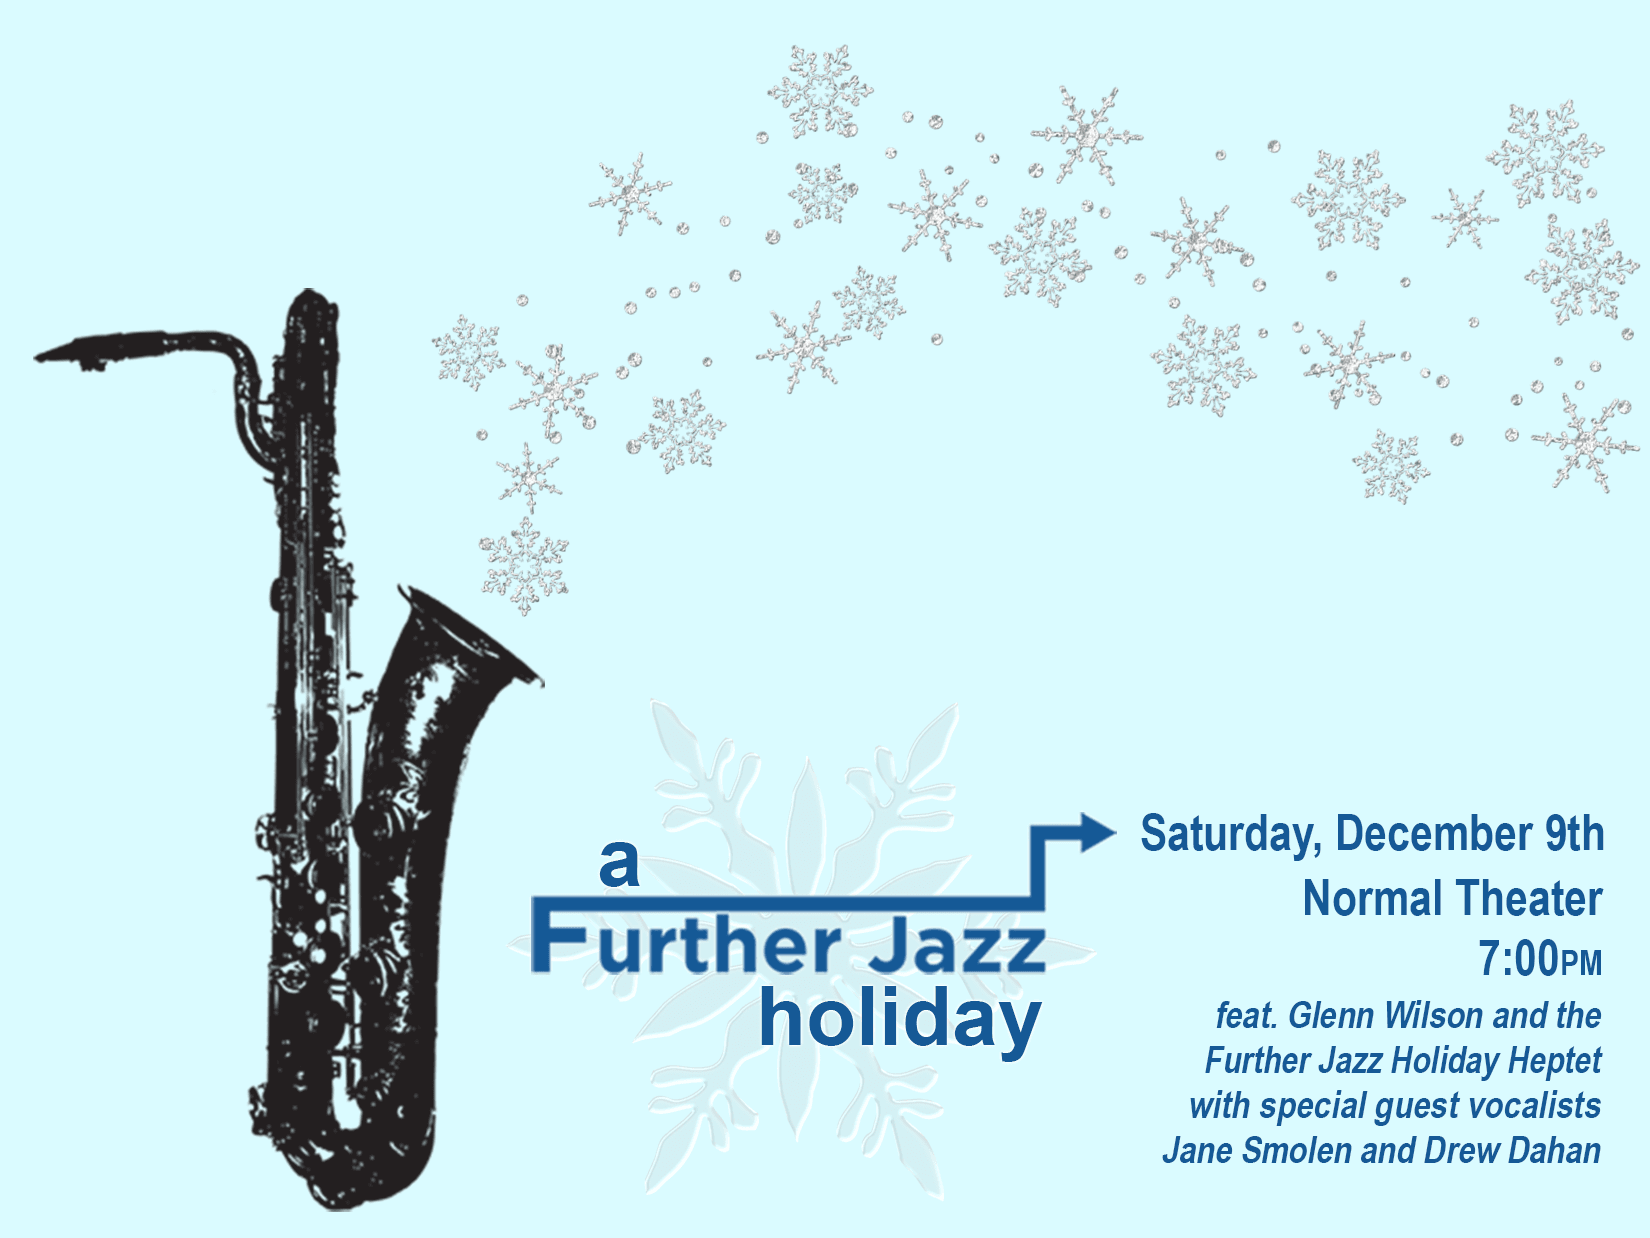 FurtherJazzHoliday